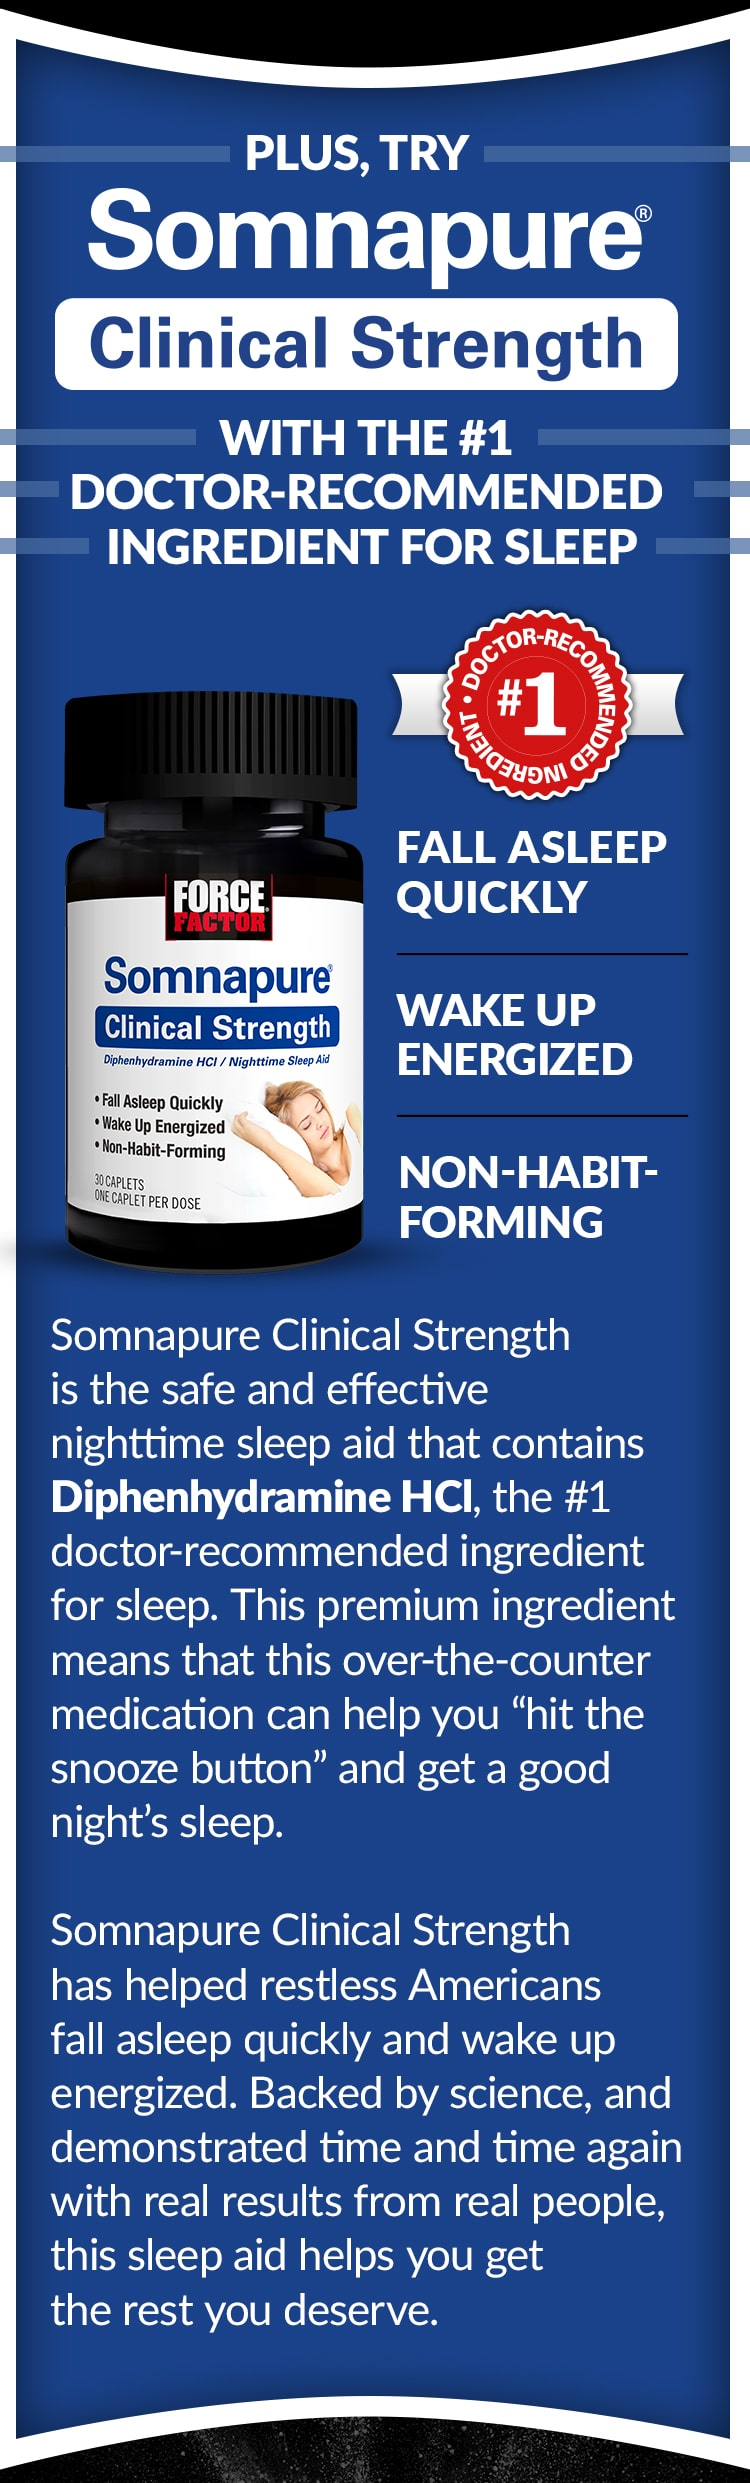 "PLUS, TRY SOMNAPURE CLINICAL STRENGTH, WITH THE #1 DOCTOR-RECOMMENDED INGREDIENT FOR SLEEP. Fall Asleep Quickly, Wake Up Energized, Non-Habit-Forming. Somnapure Clinical Strength is the safe and effective nighttime sleep aid that contains Diphenhydramine HCl, the #1 doctor-recommended ingredient for sleep. This premium ingredient means that this over-the-counter medication can help you ""hit the snooze button"" and get a good night's sleep. Somnapure Clinical Strength has helped restless Americans fall asleep quickly and wake up energized. Backed by science, and demonstrated time and time again with real results from real people, this sleep aid helps you get the rest you deserve."